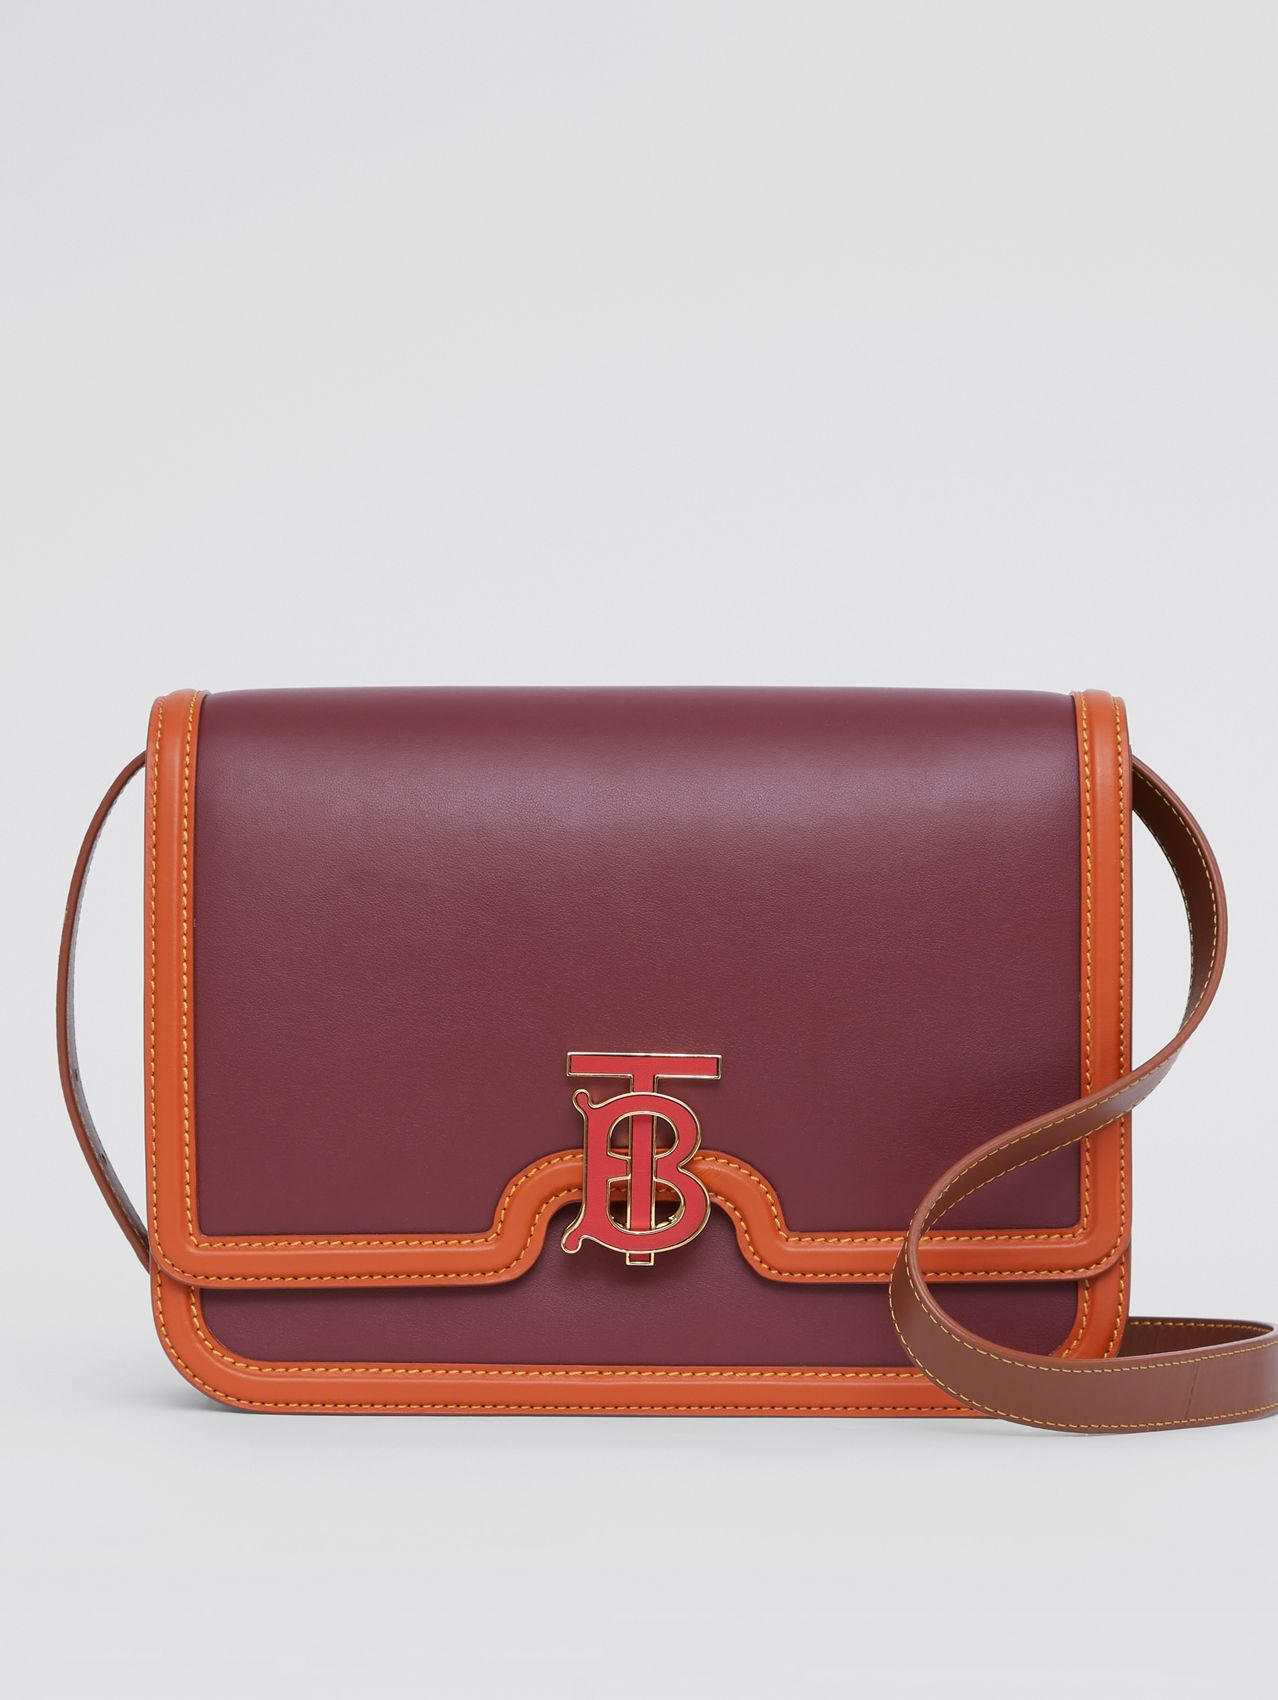 Medium Colour Block Leather TB Bag in Garnet